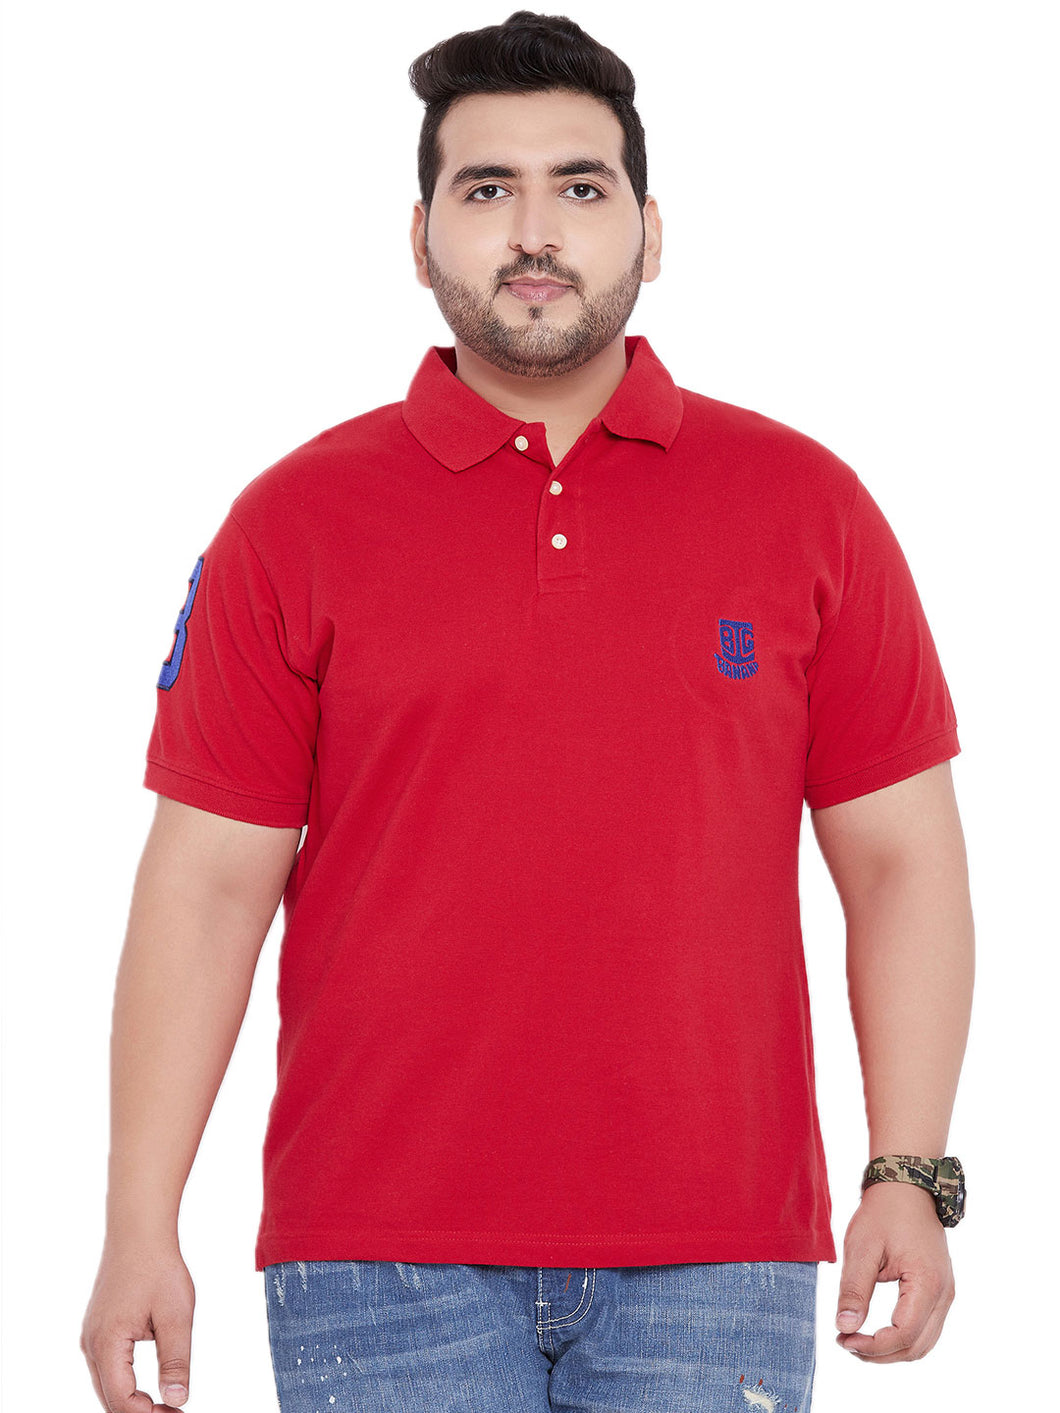 bigbanana TIM Red Polo T-Shirt - Bigbanana